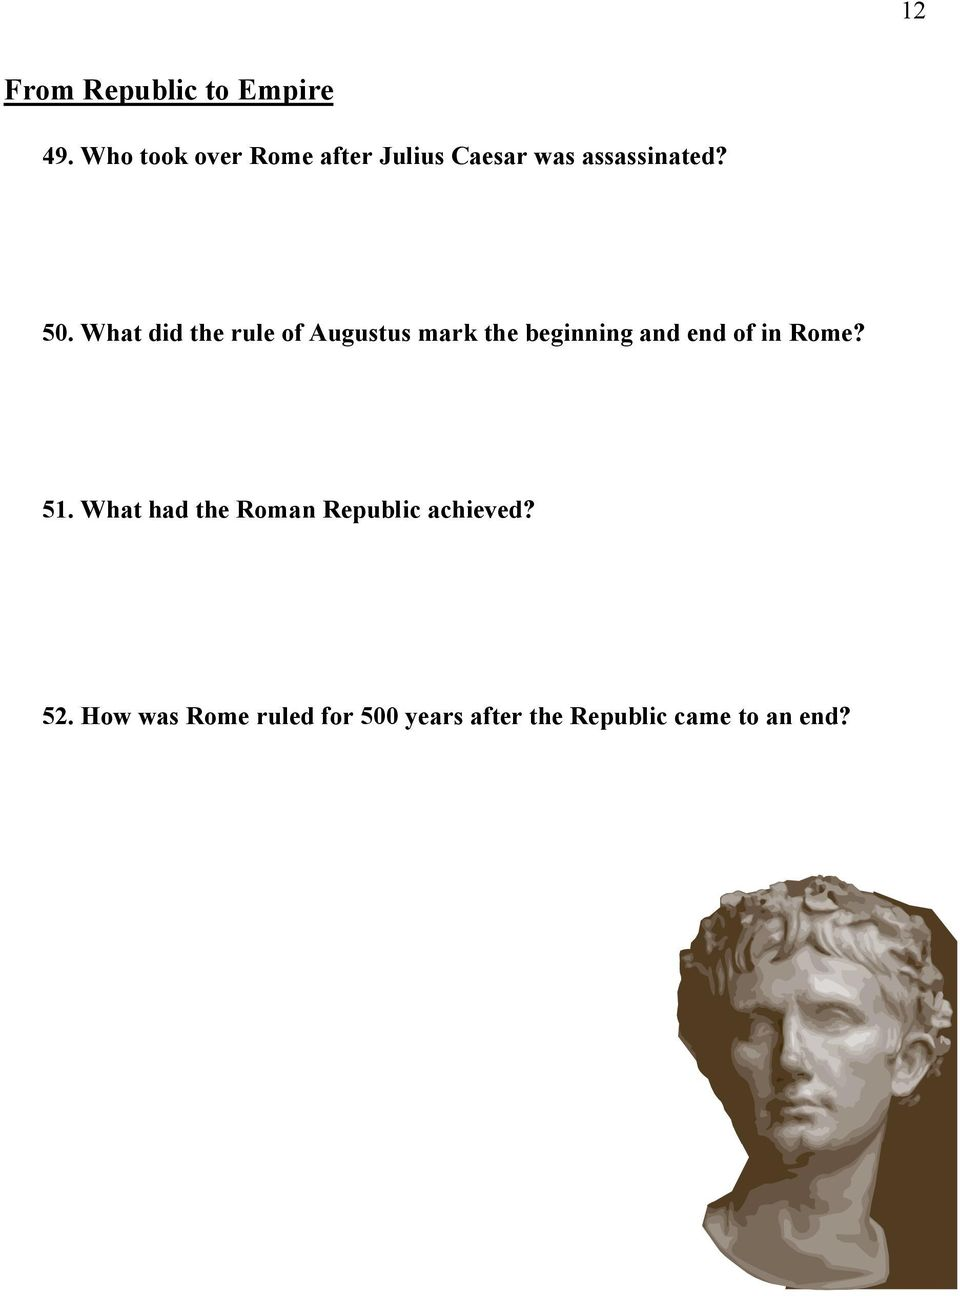 What did the rule of Augustus mark the beginning and end of in Rome?